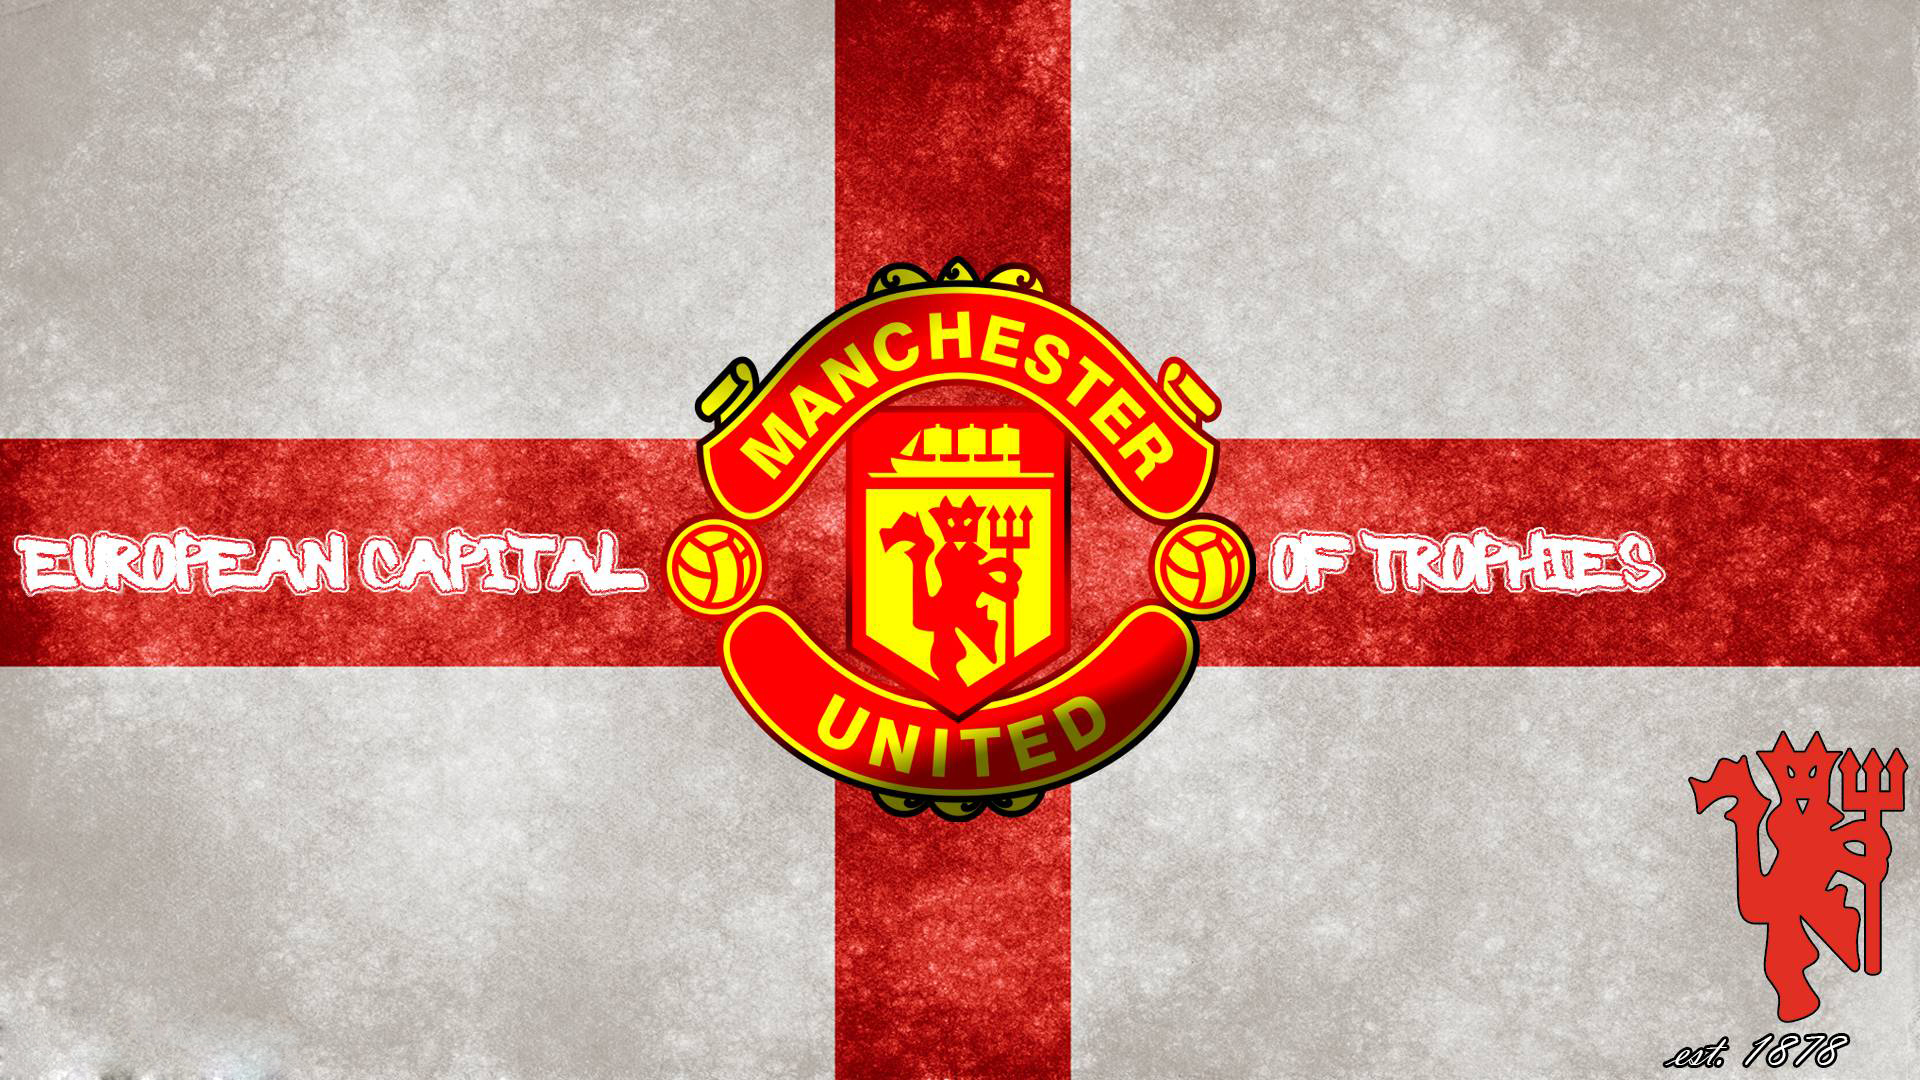 Manchester united logo wallpapers hd wallpaper 1920x1080 voltagebd Choice Image